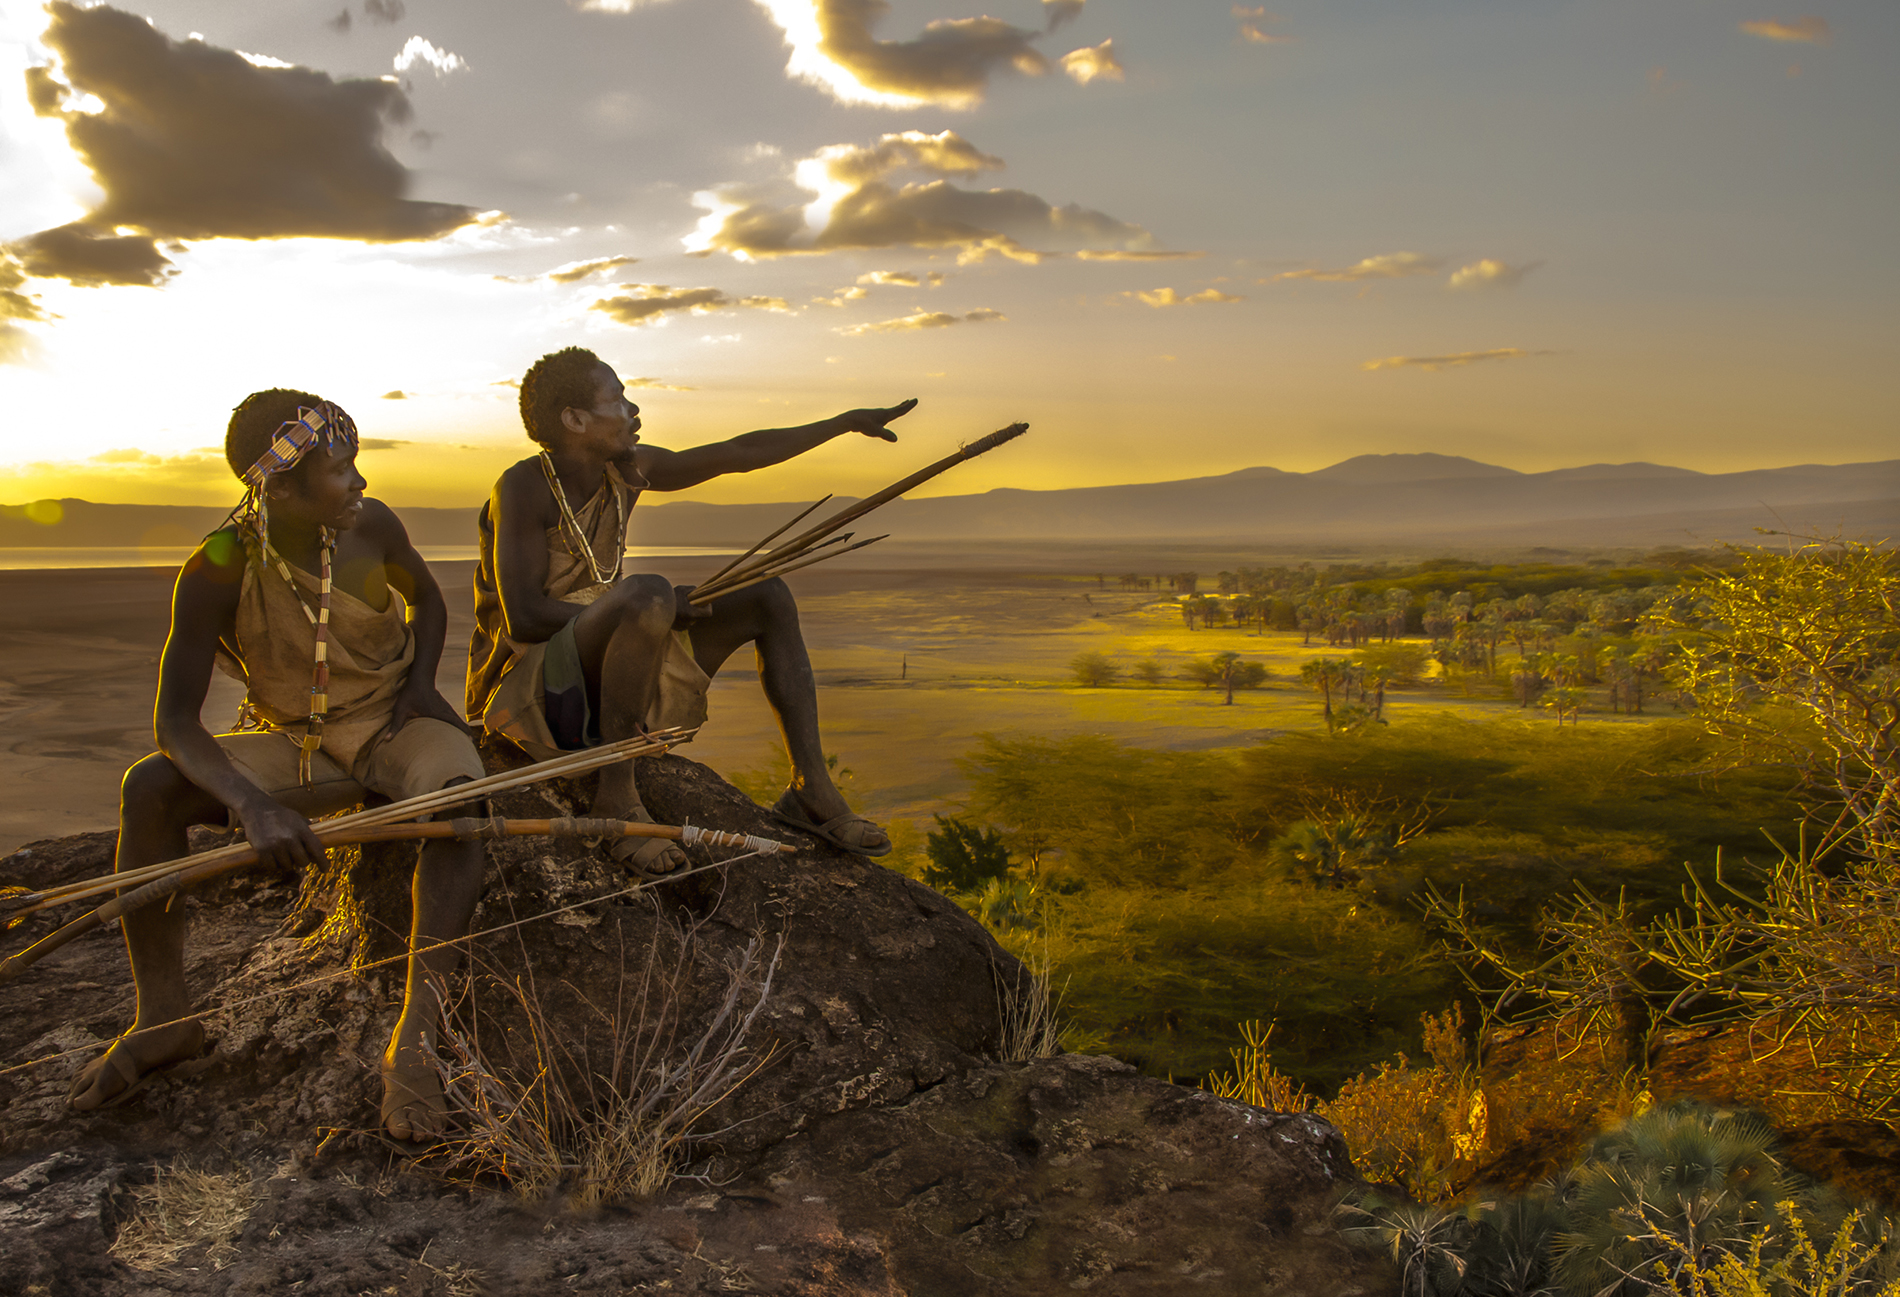 Hadza Hunters Overlooking their Territory, Tanzania © Carol Beckwith & Angela Fisher